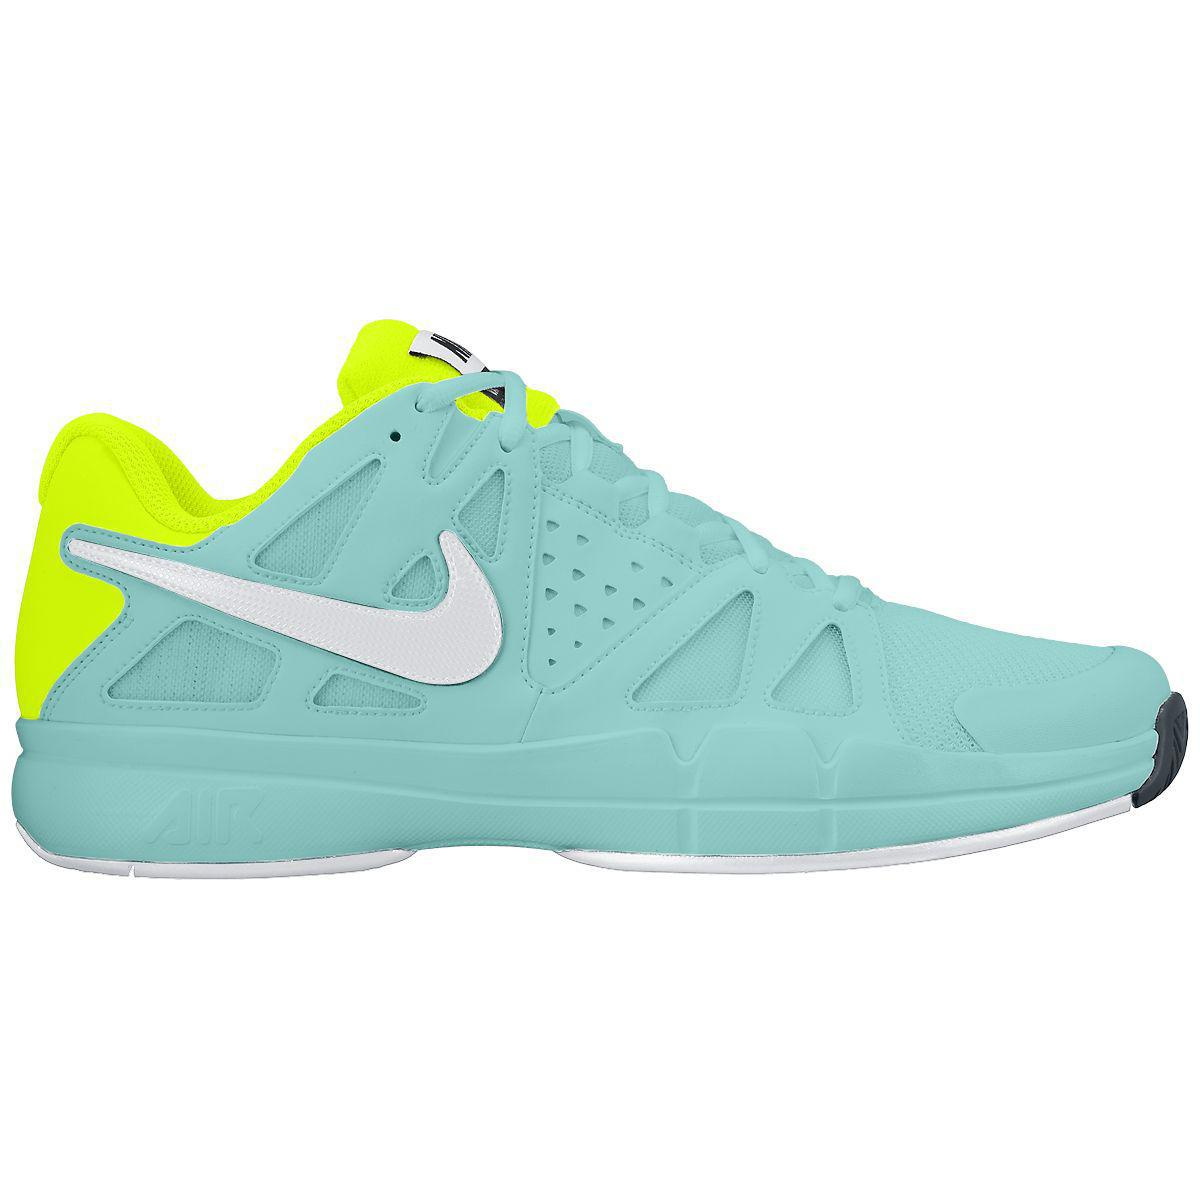 nike womens air vapor advantage tennis shoes light aqua